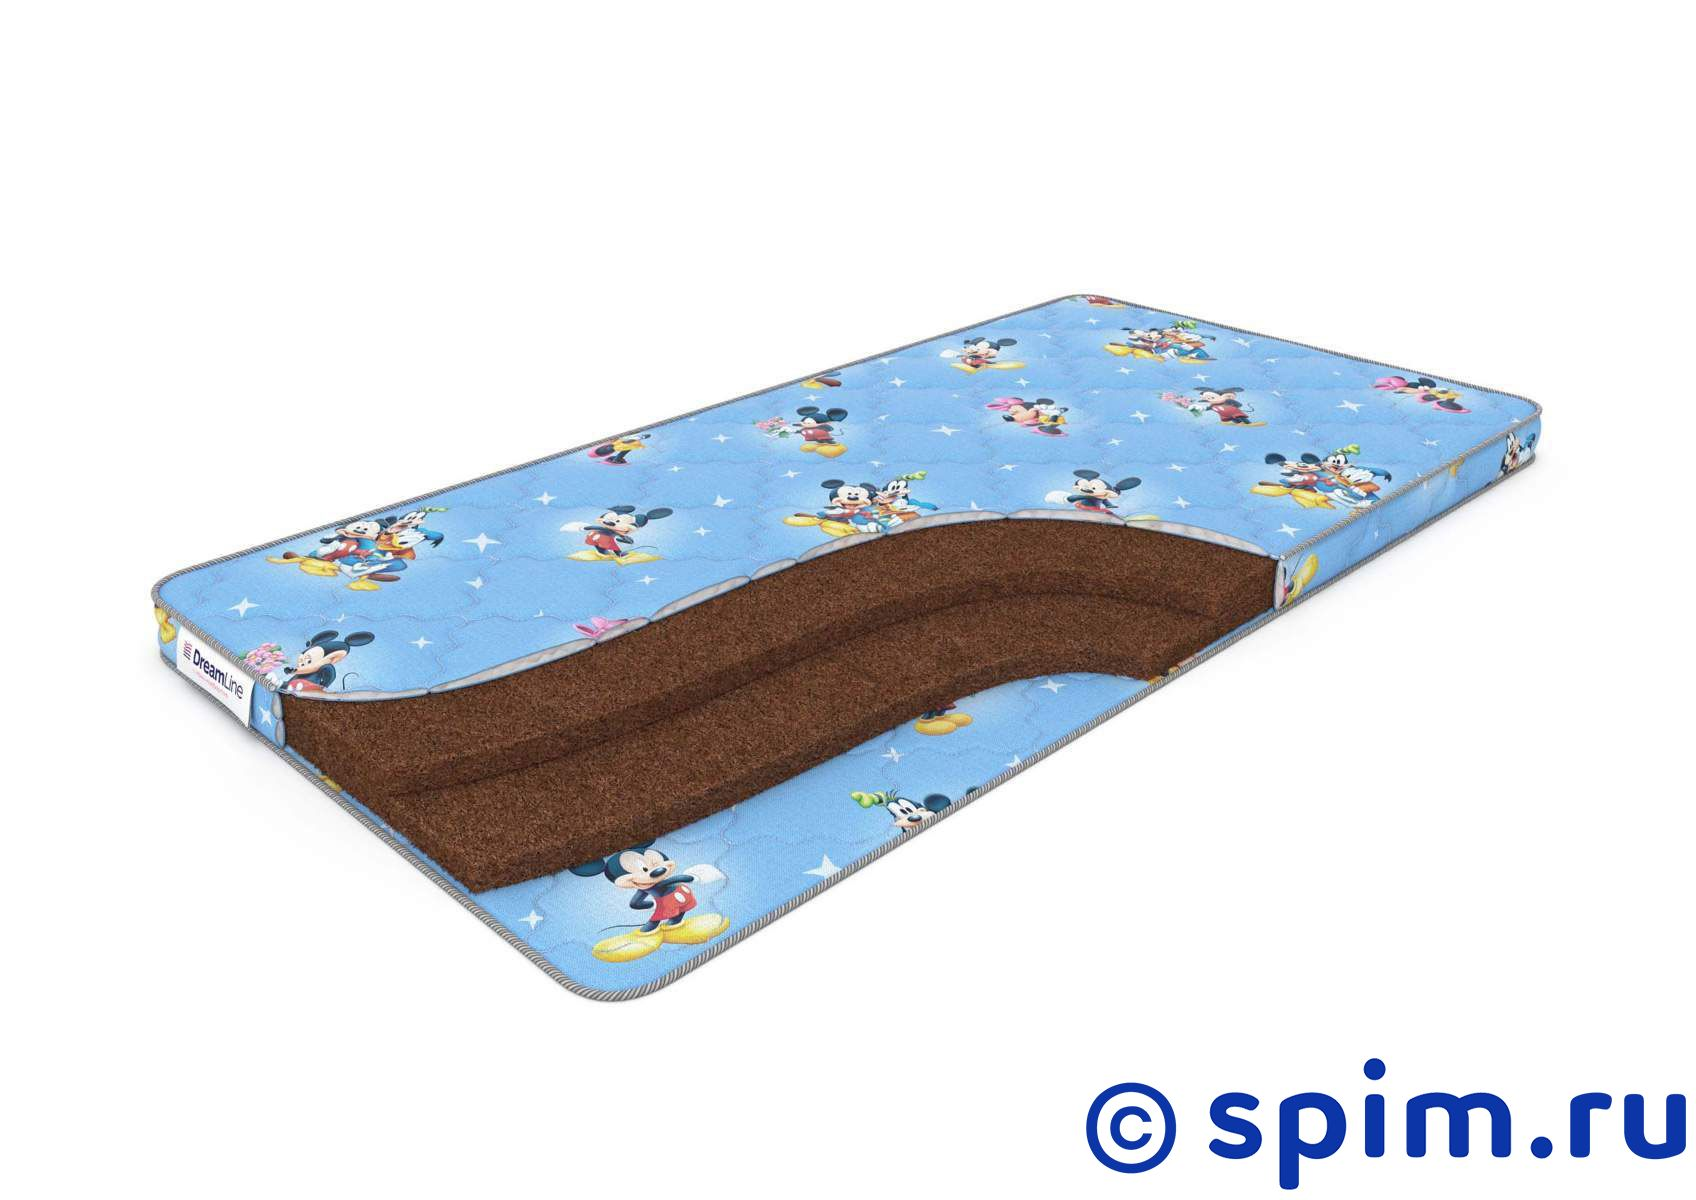 Детский матрас DreamLine BabyDream 6 80х200 см матрас dreamline springless soft slim 90х195 см